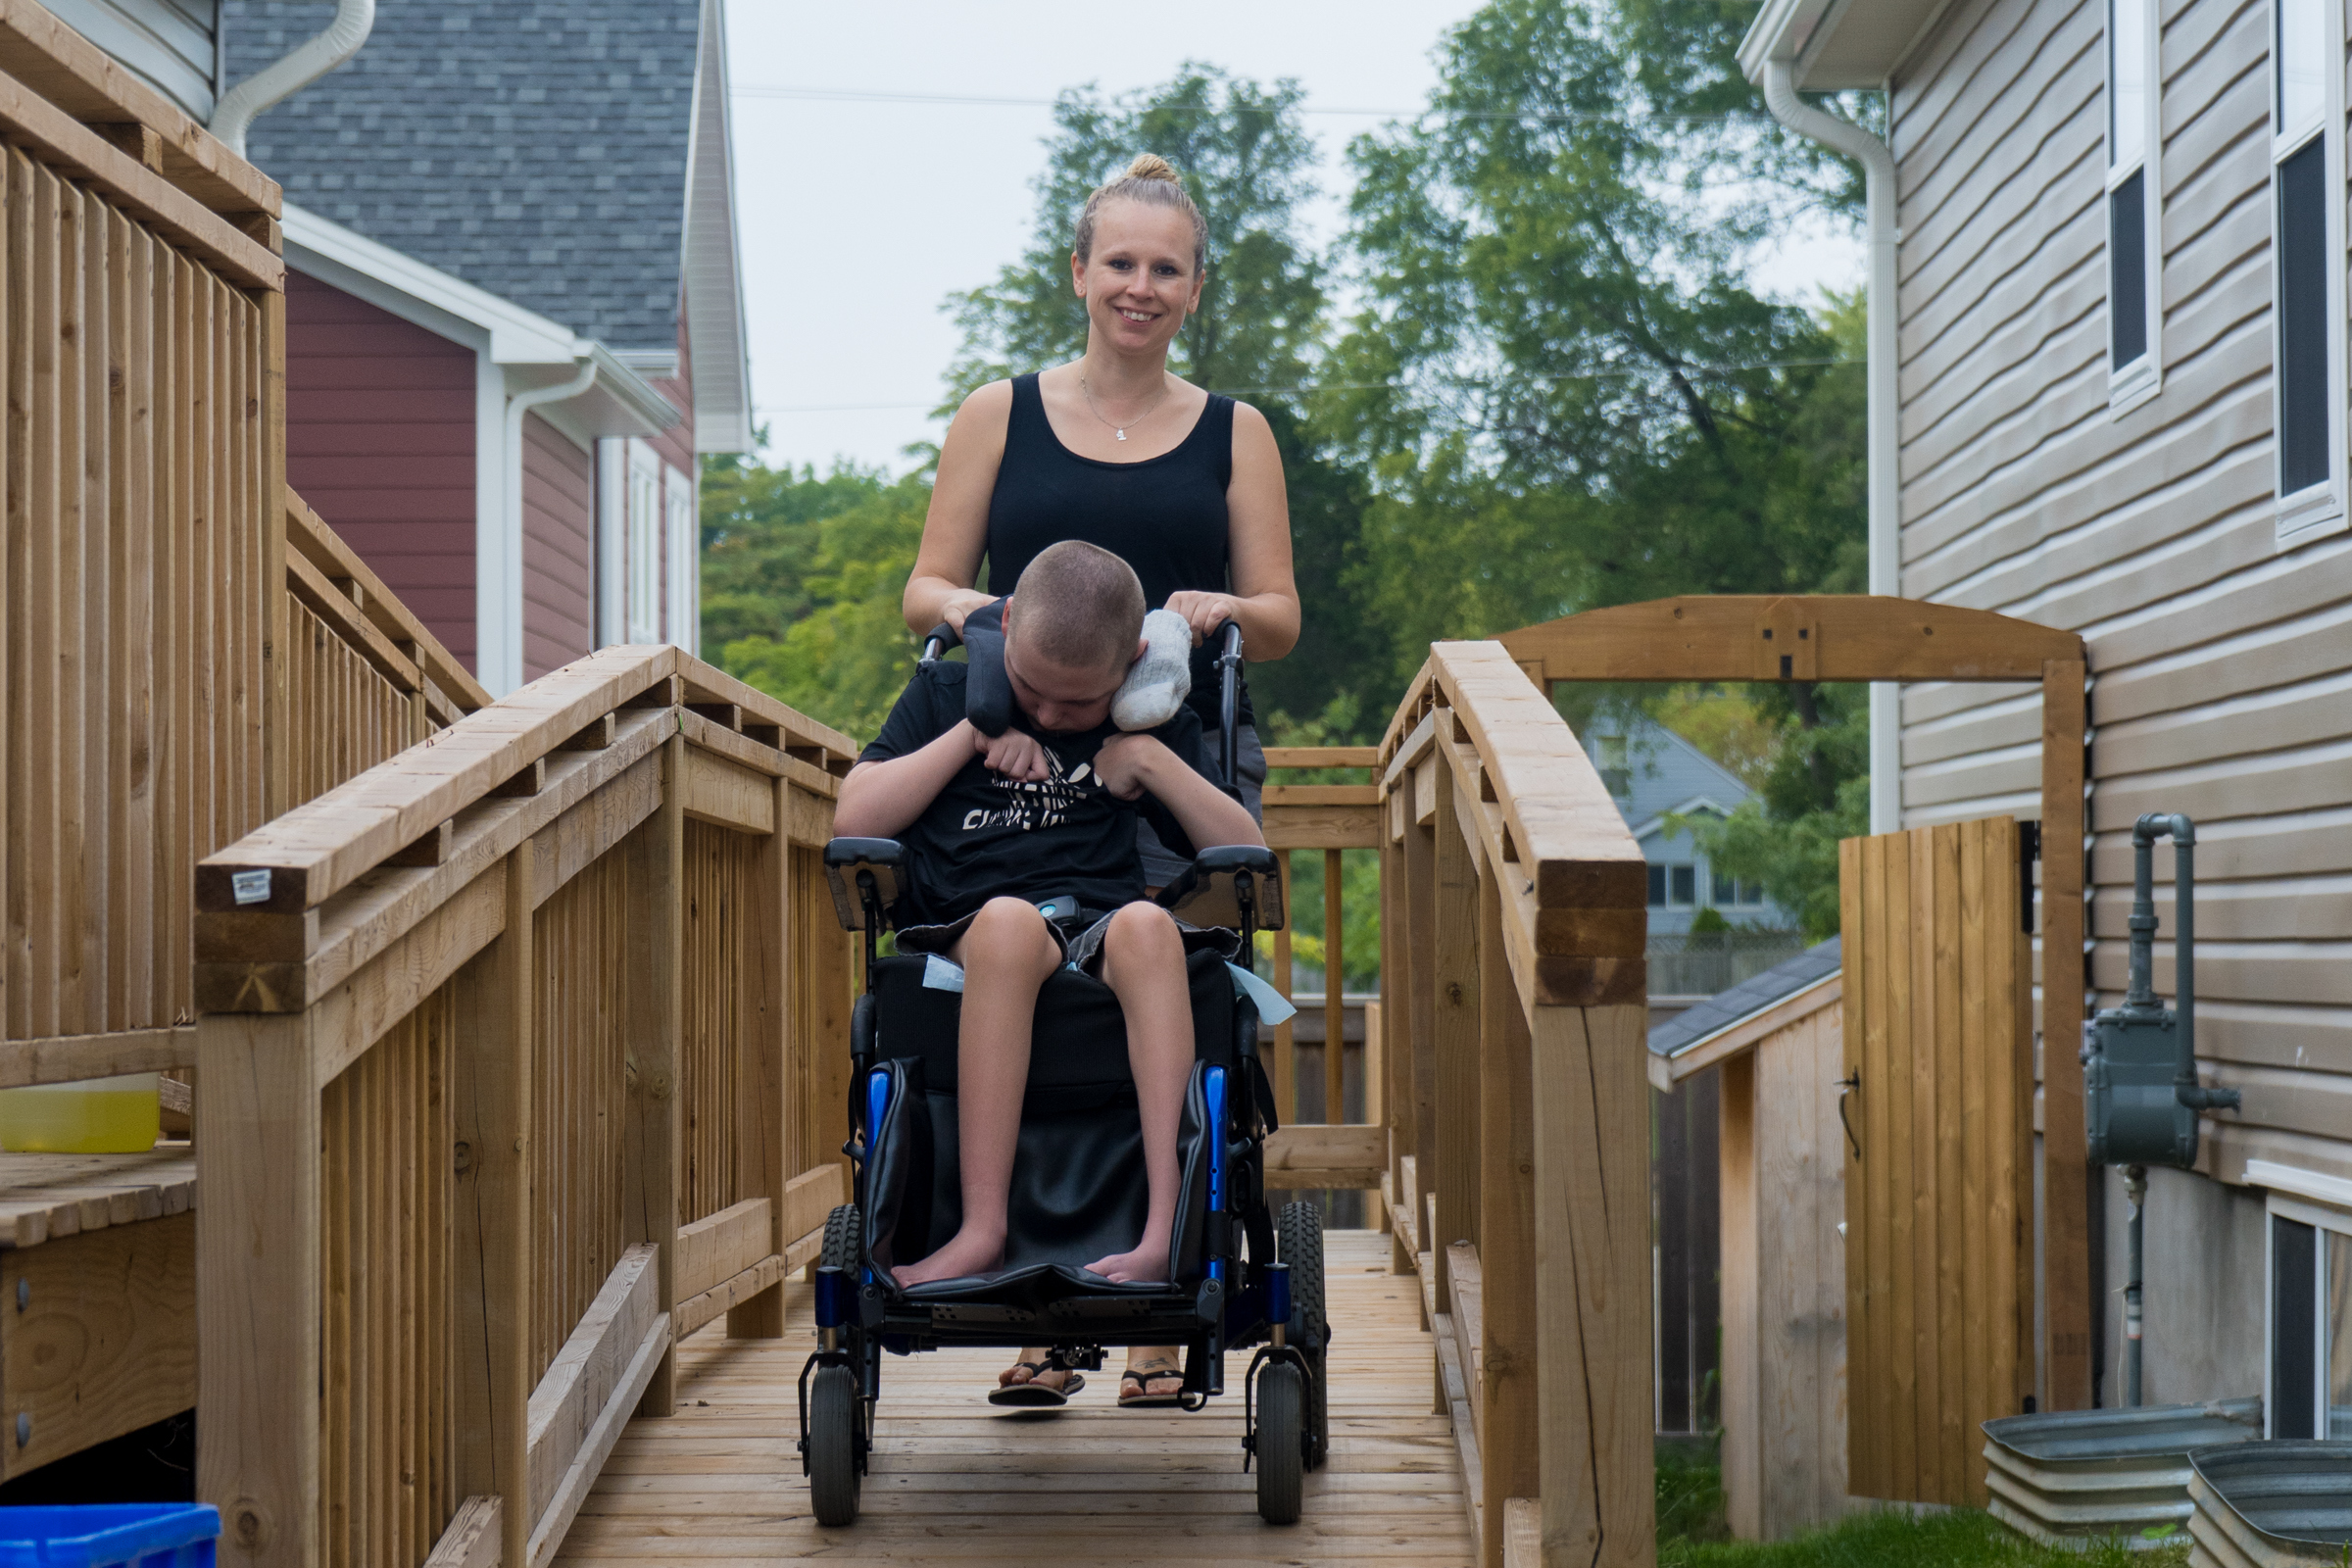 Brianne taking her son Brayden down the wheelchair ramp on their Habitat home.